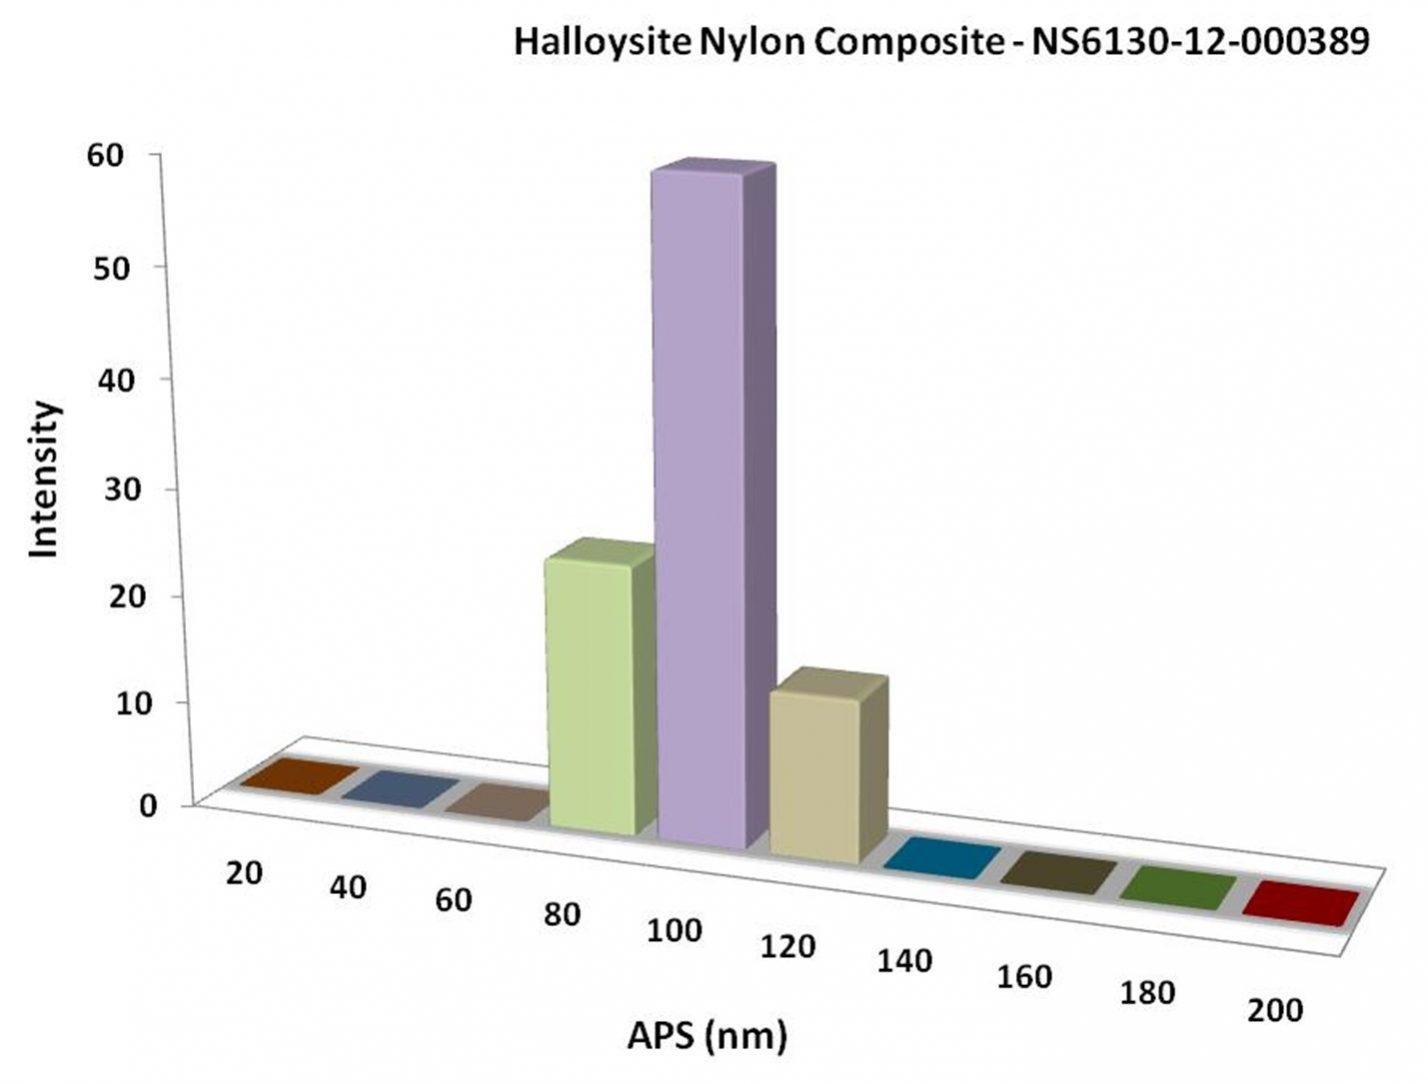 Particles Size Analysis - Halloysite Nylon Composite